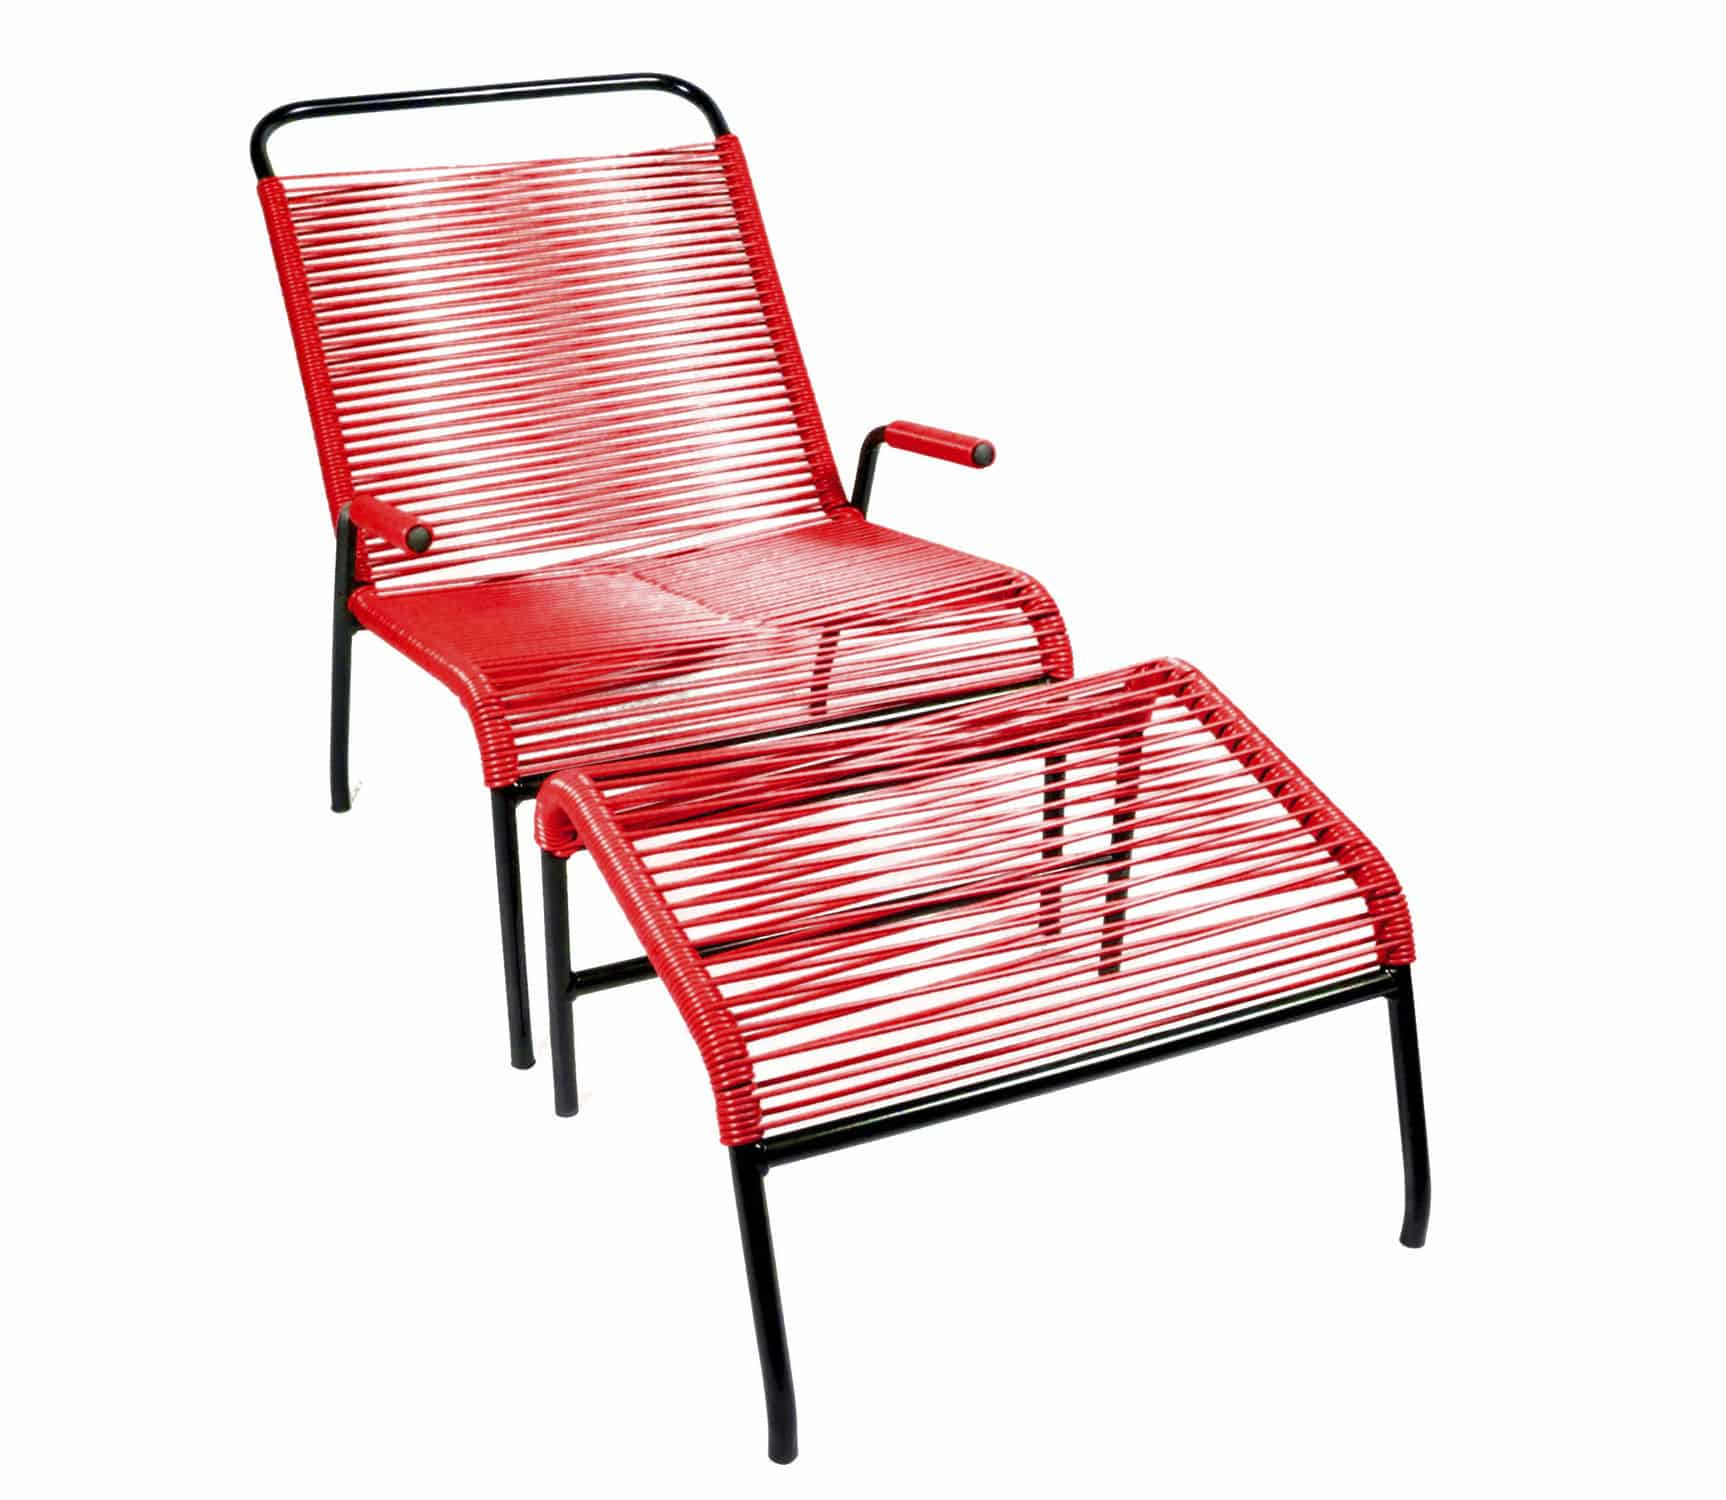 Scandinavian Design Armchair Plastic Steel With Armrests